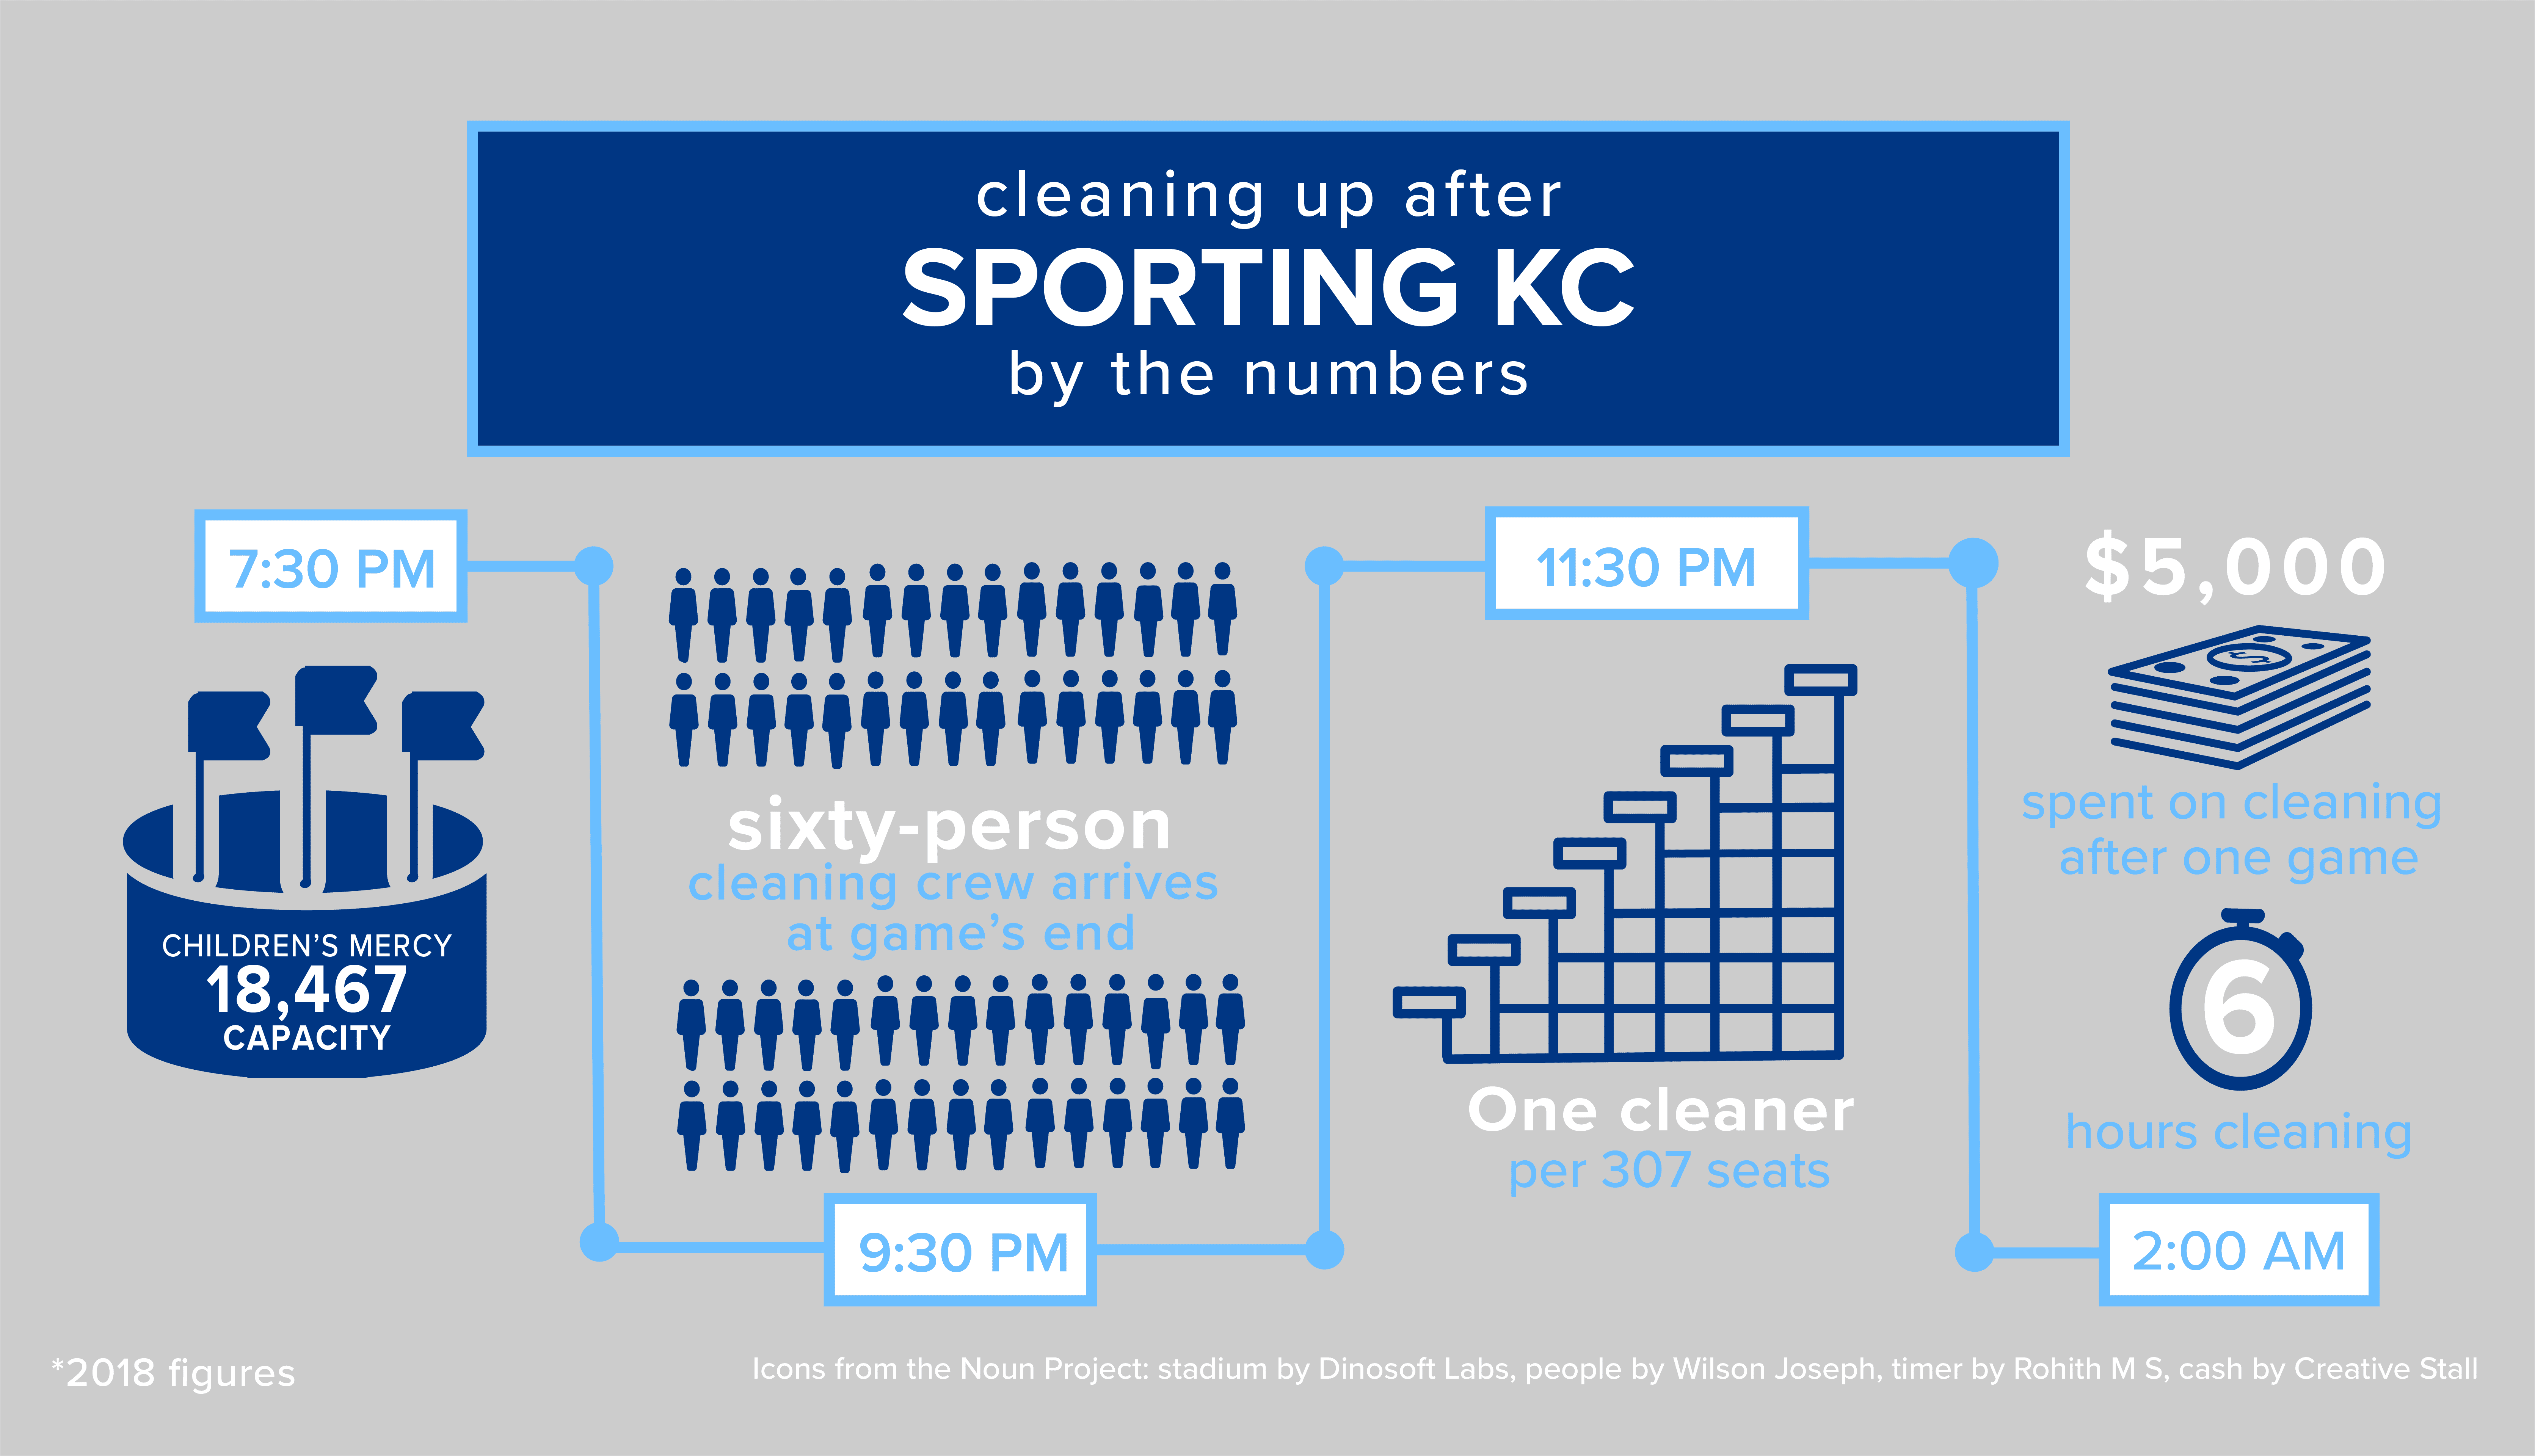 Cleaning up after Sporting KC by the Numbers - Infographic showing that at 7:30 PM. Children's Mercy has 18,467 capacity. A sixty-person crew arrives at game's end. at 9:30 p.m. at 11:30 p.m. one cleaner per 307 seats works. $5,000 is spent on cleaning after one game. It's 2:00 a.m. after 6 hours spent cleaning. 2018 figures.